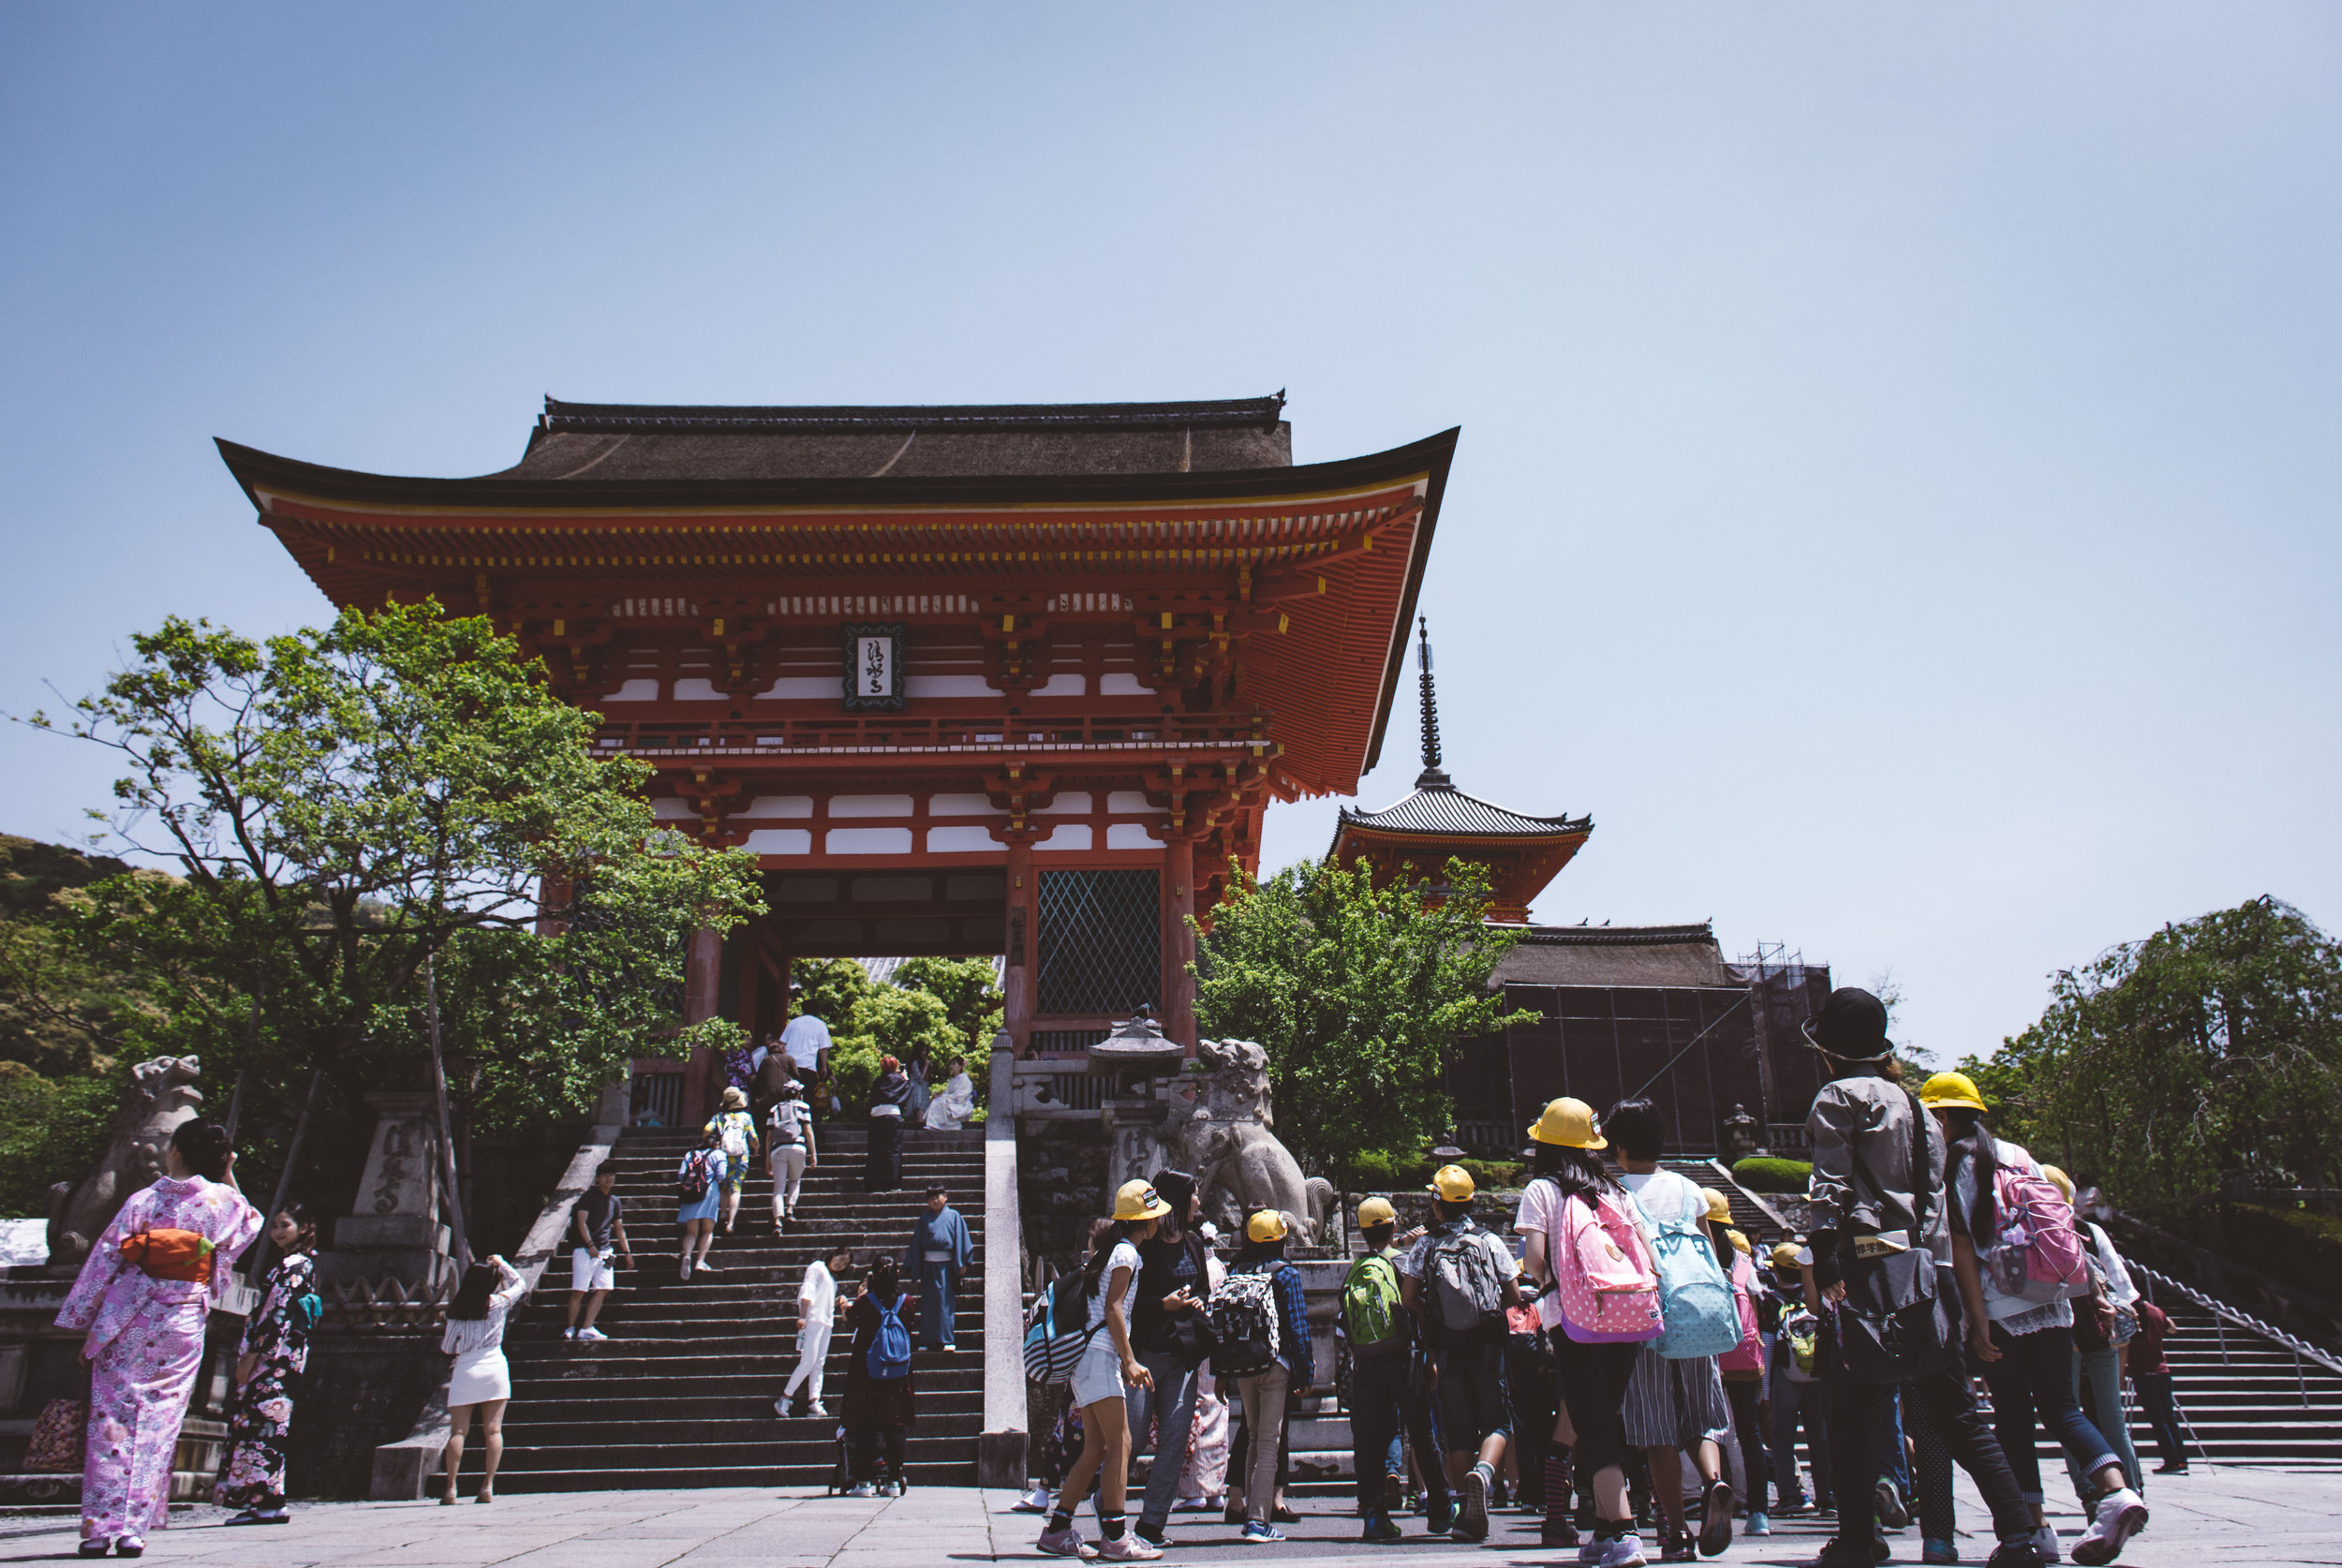 kyoto has it all - Temples, kimonos, tradition, children, selfies, construction -- this is Kyoto. Fast-paced, fashionable, full of history. (And touring school groups.)